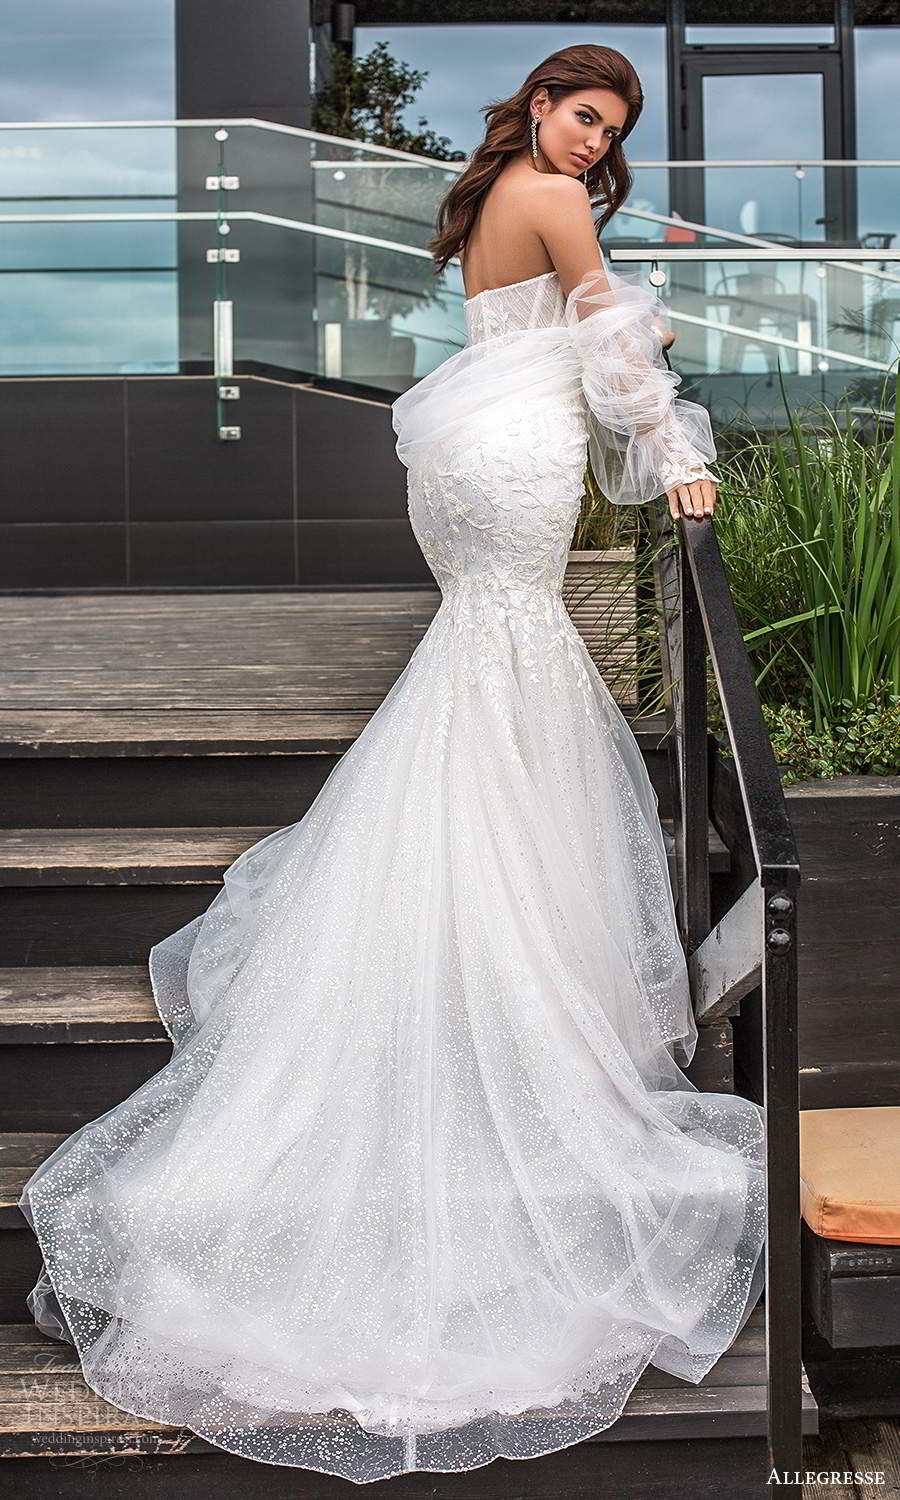 allegresse 2021 bridal detached bishop sleeves strapless sweetheart neckline fully embellished fit flare wedding dress chapel train (4) sv